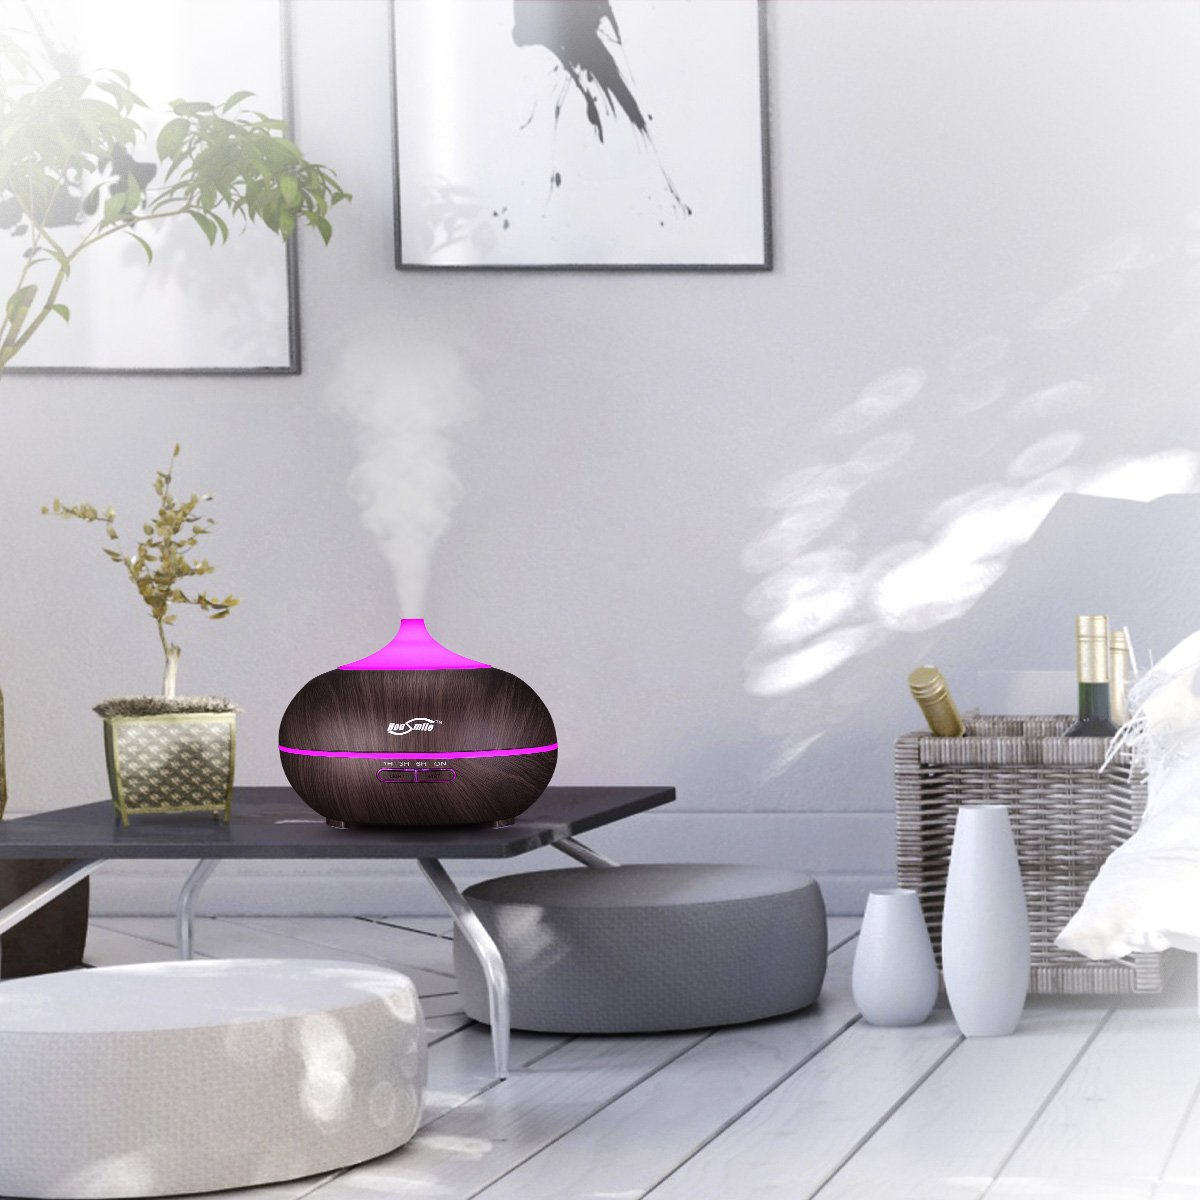 Housmile 300ml Wood Grain Essential Oil Diffuser, Ultrasonic Aroma Cool Mist Humidifier with 7-Color LED Light Changing & 4 Times Setting for Office Room